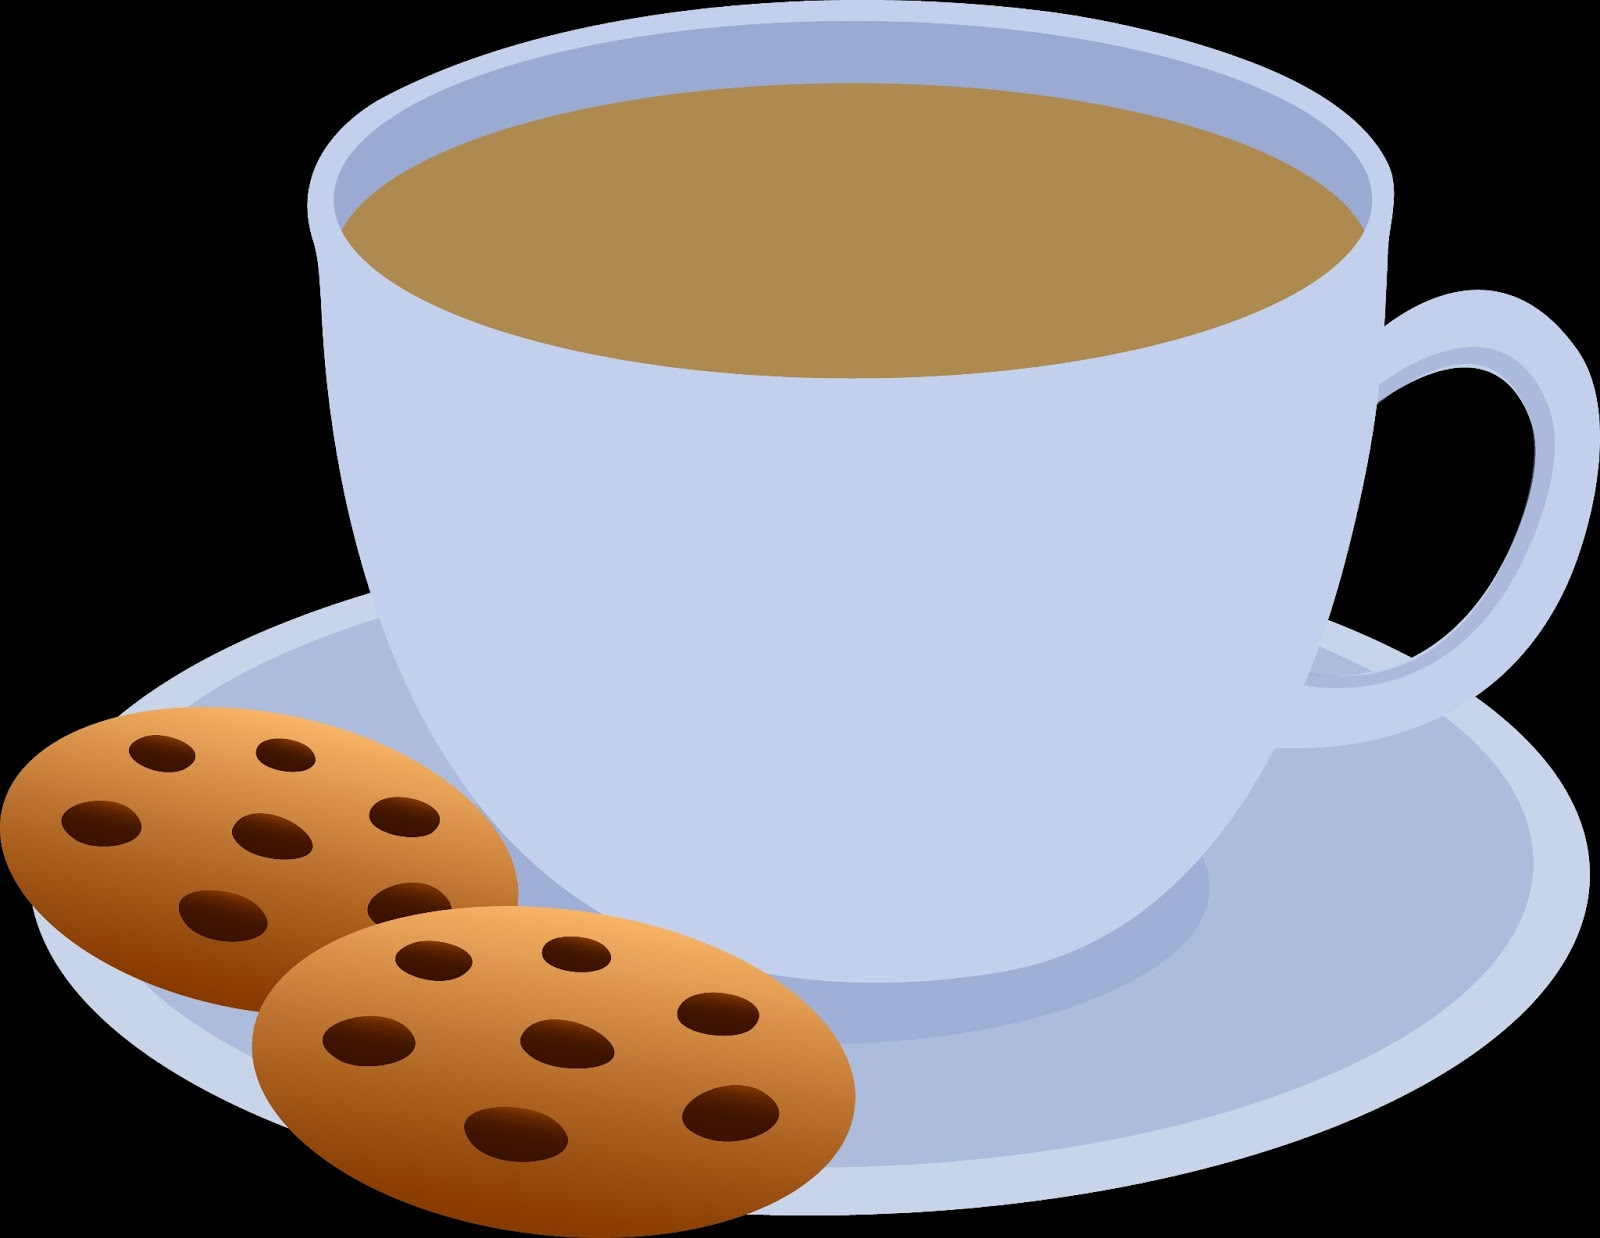 Coffee and cookies clipart png black and white library Free Cookie Coffee Cliparts, Download Free Clip Art, Free ... png black and white library